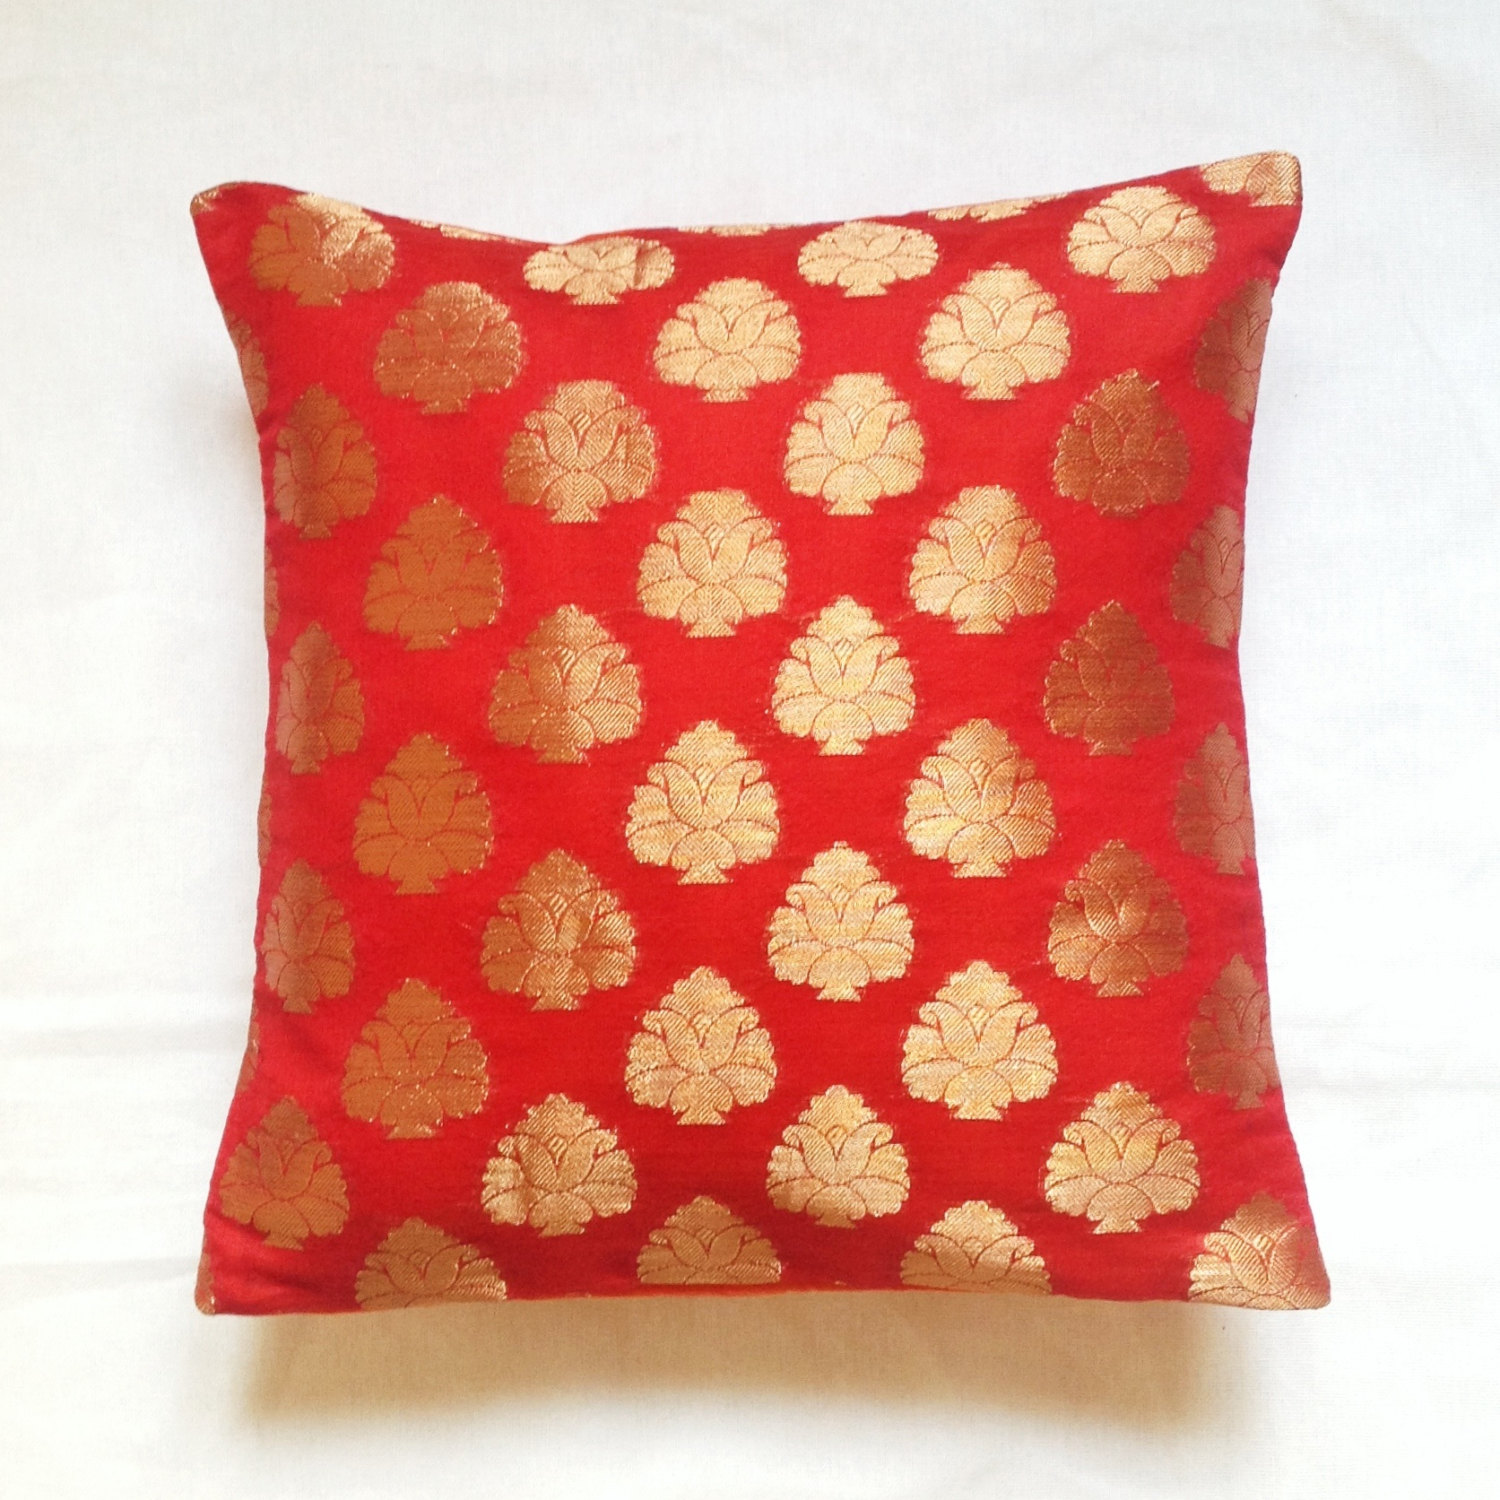 Handmade Modern Pillow Covers : Pillow covers DesiCrafts